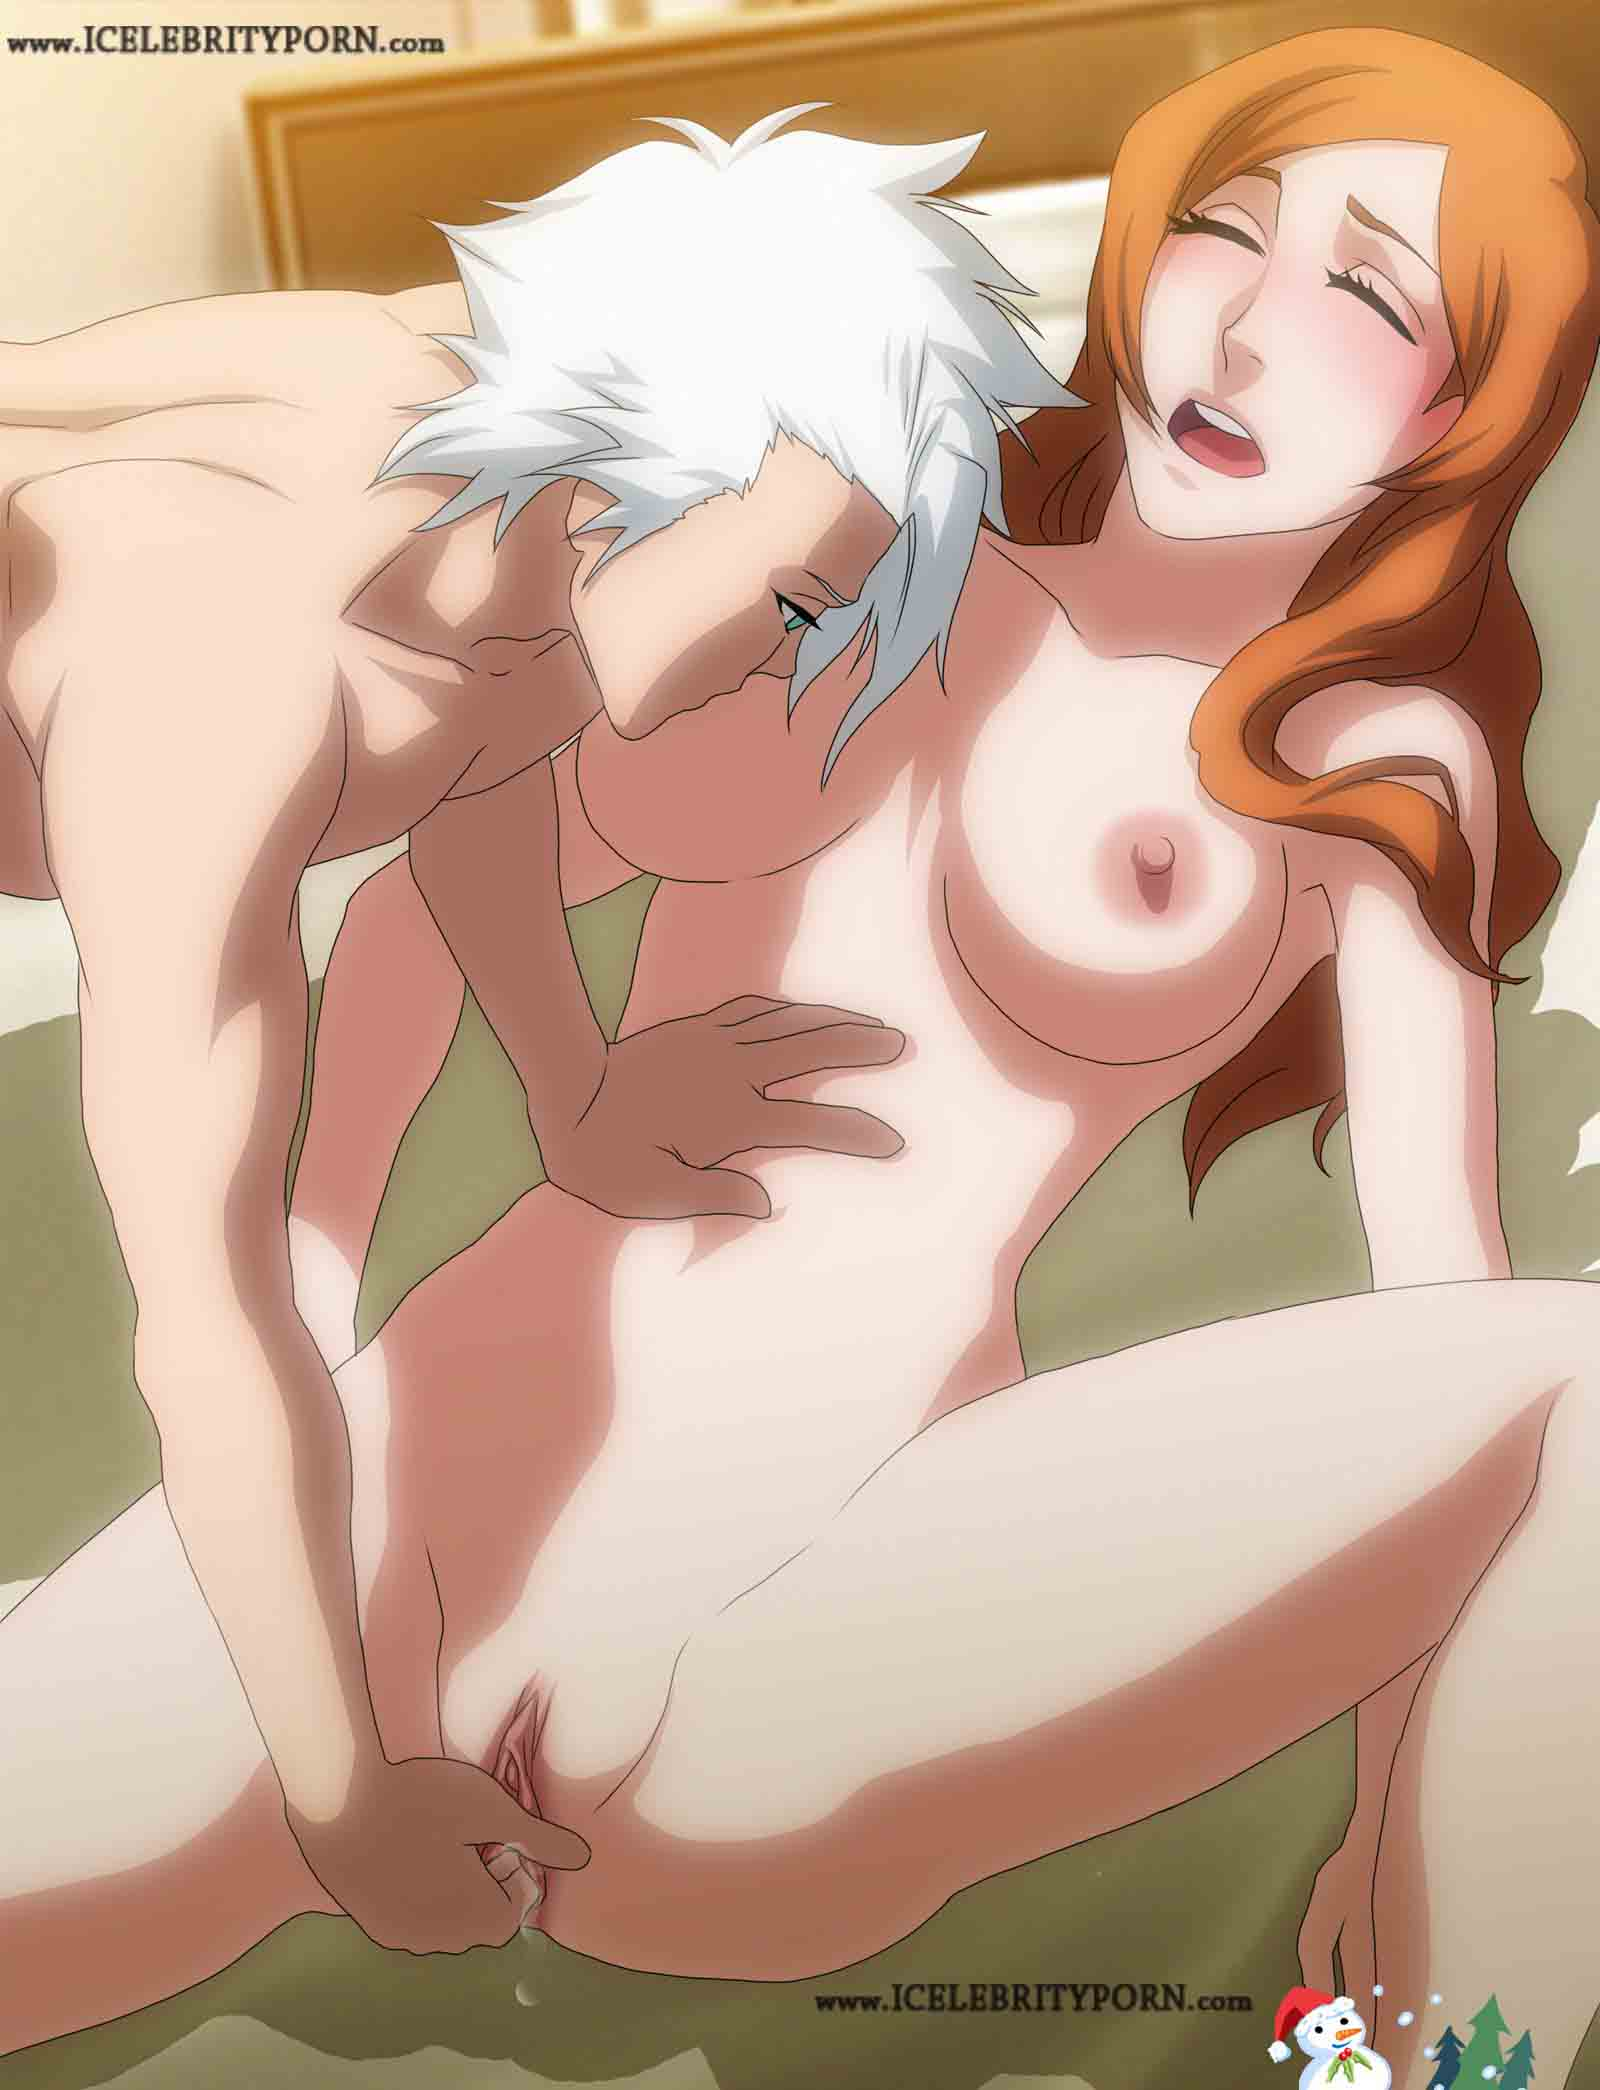 bleach-version-porno-comic-porn-sex-imagenes-videos-folladas-nude-fake-celebrity-cartoon-anime-vagina-tetas-coño-desnuda (8)